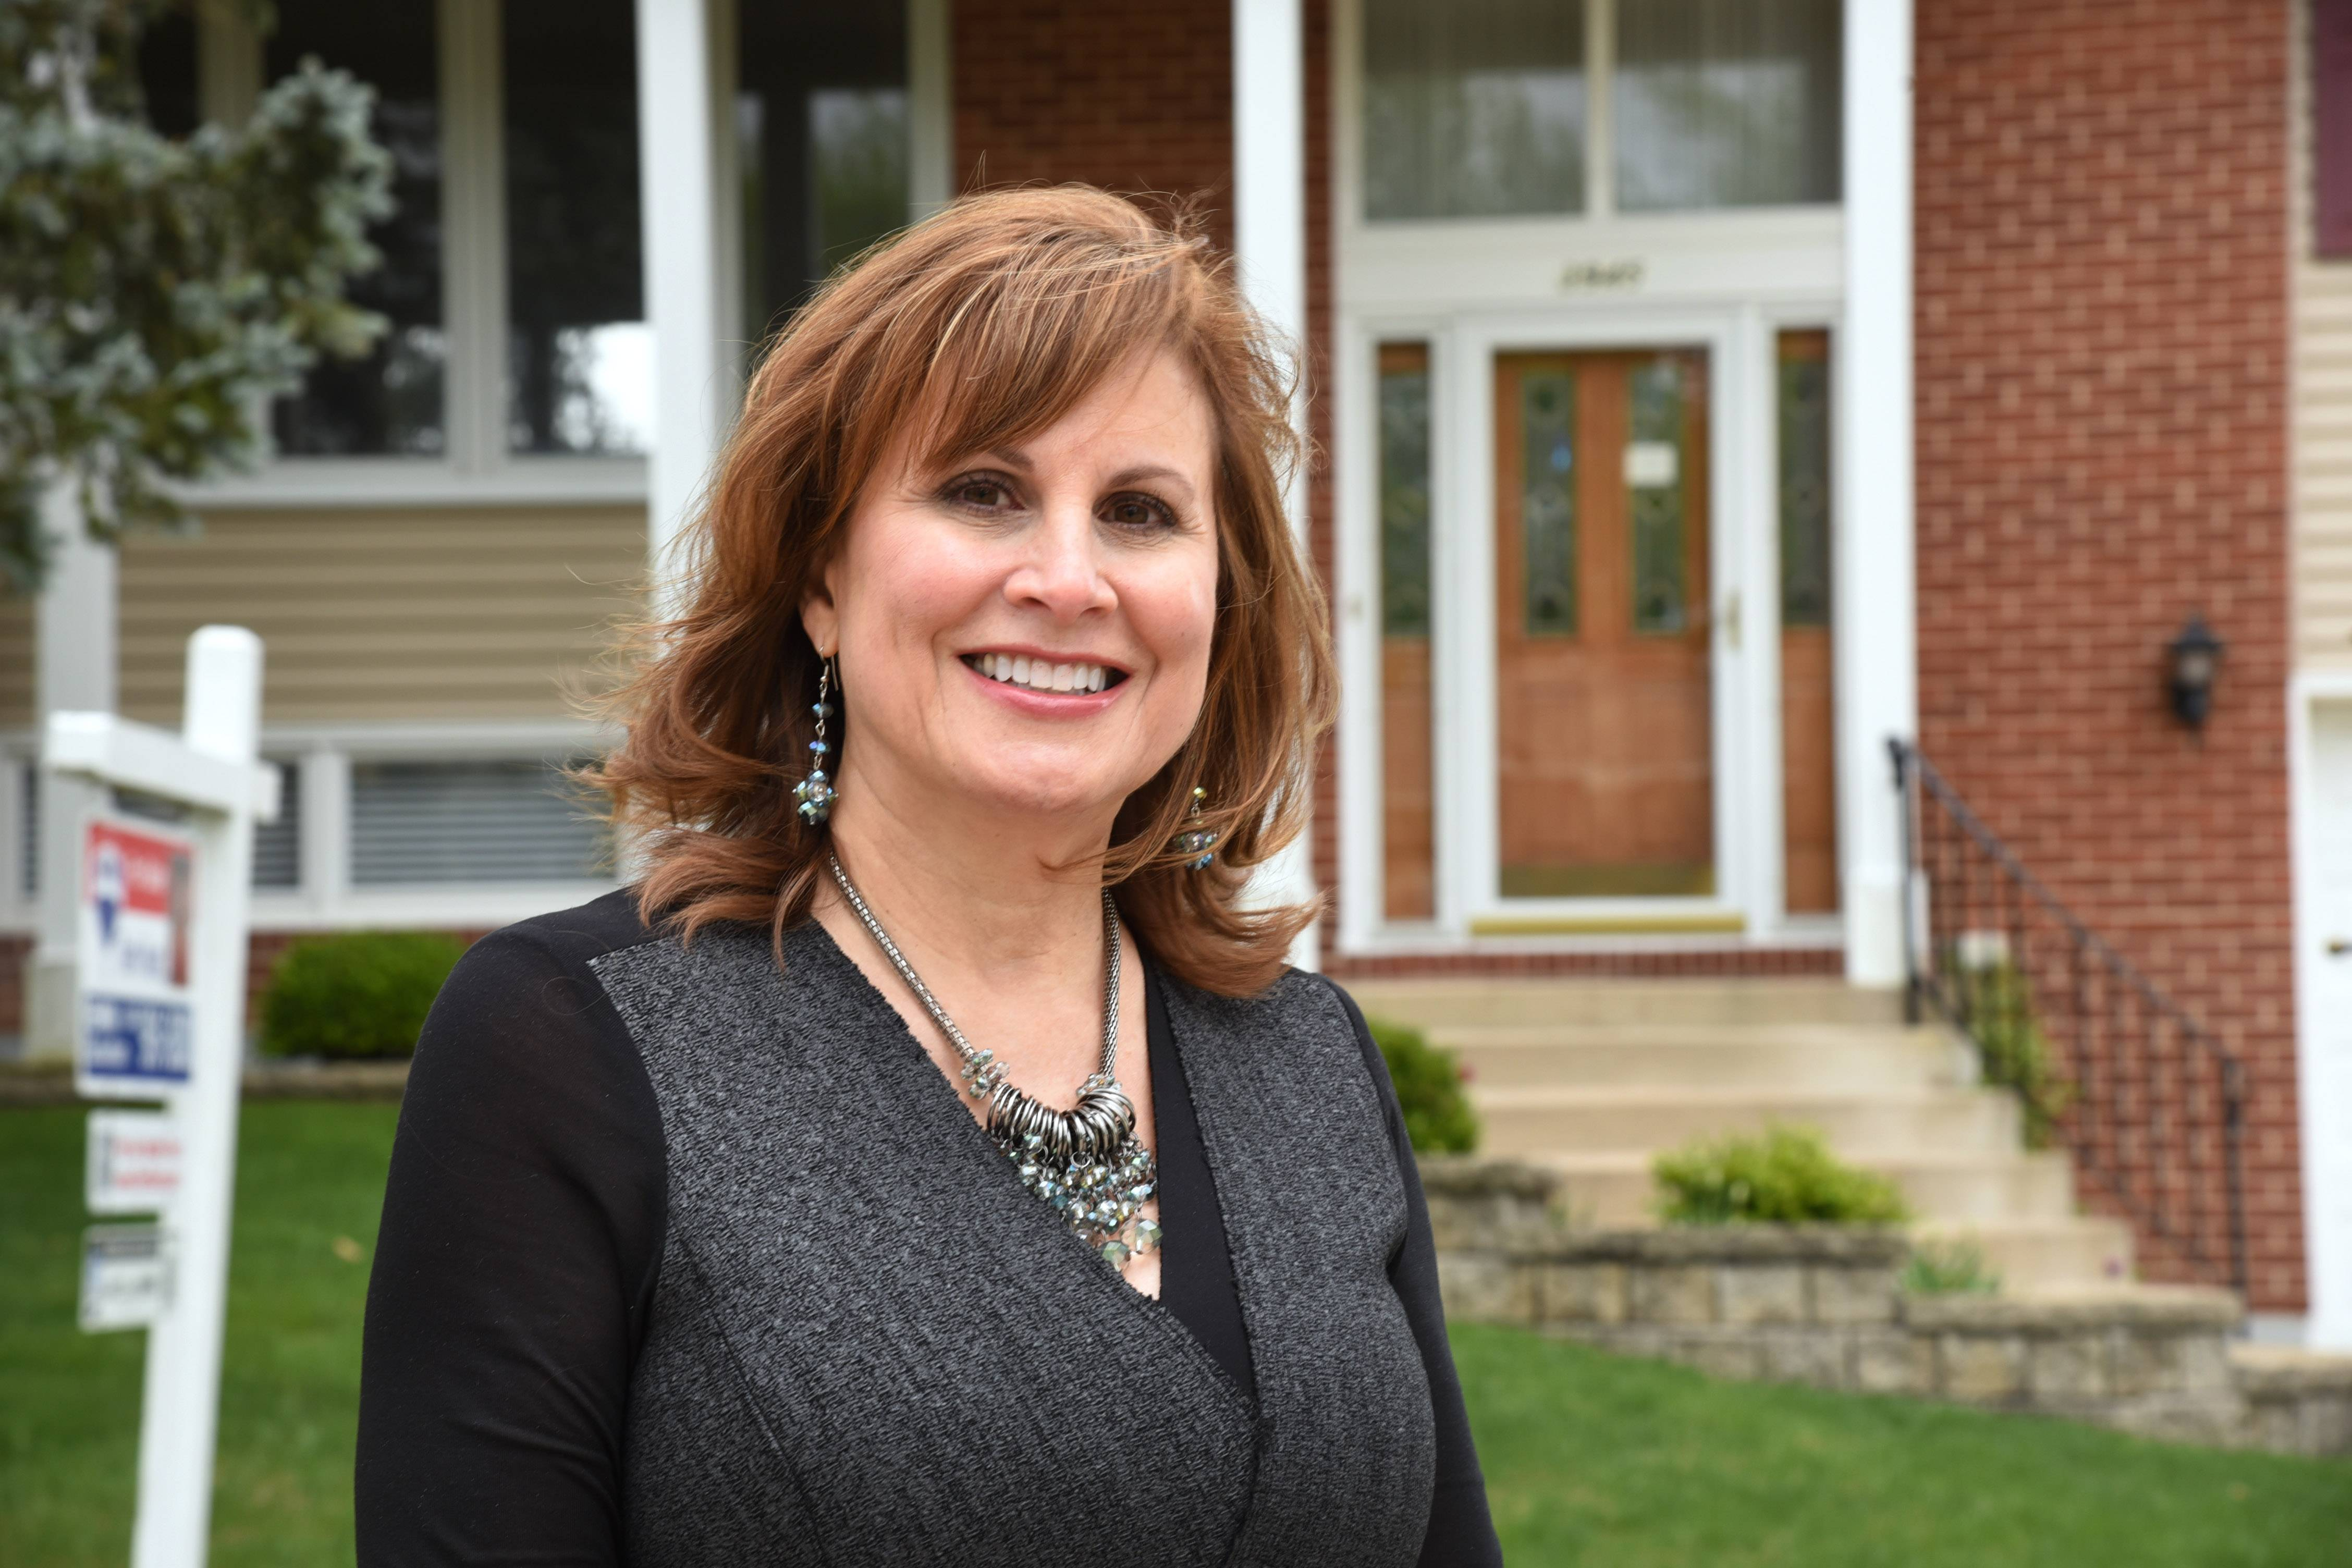 RE/MAX Suburban agent Terri Hunt in front of her listing in the Winston Knolls neighborhood of Hoffman Estates.